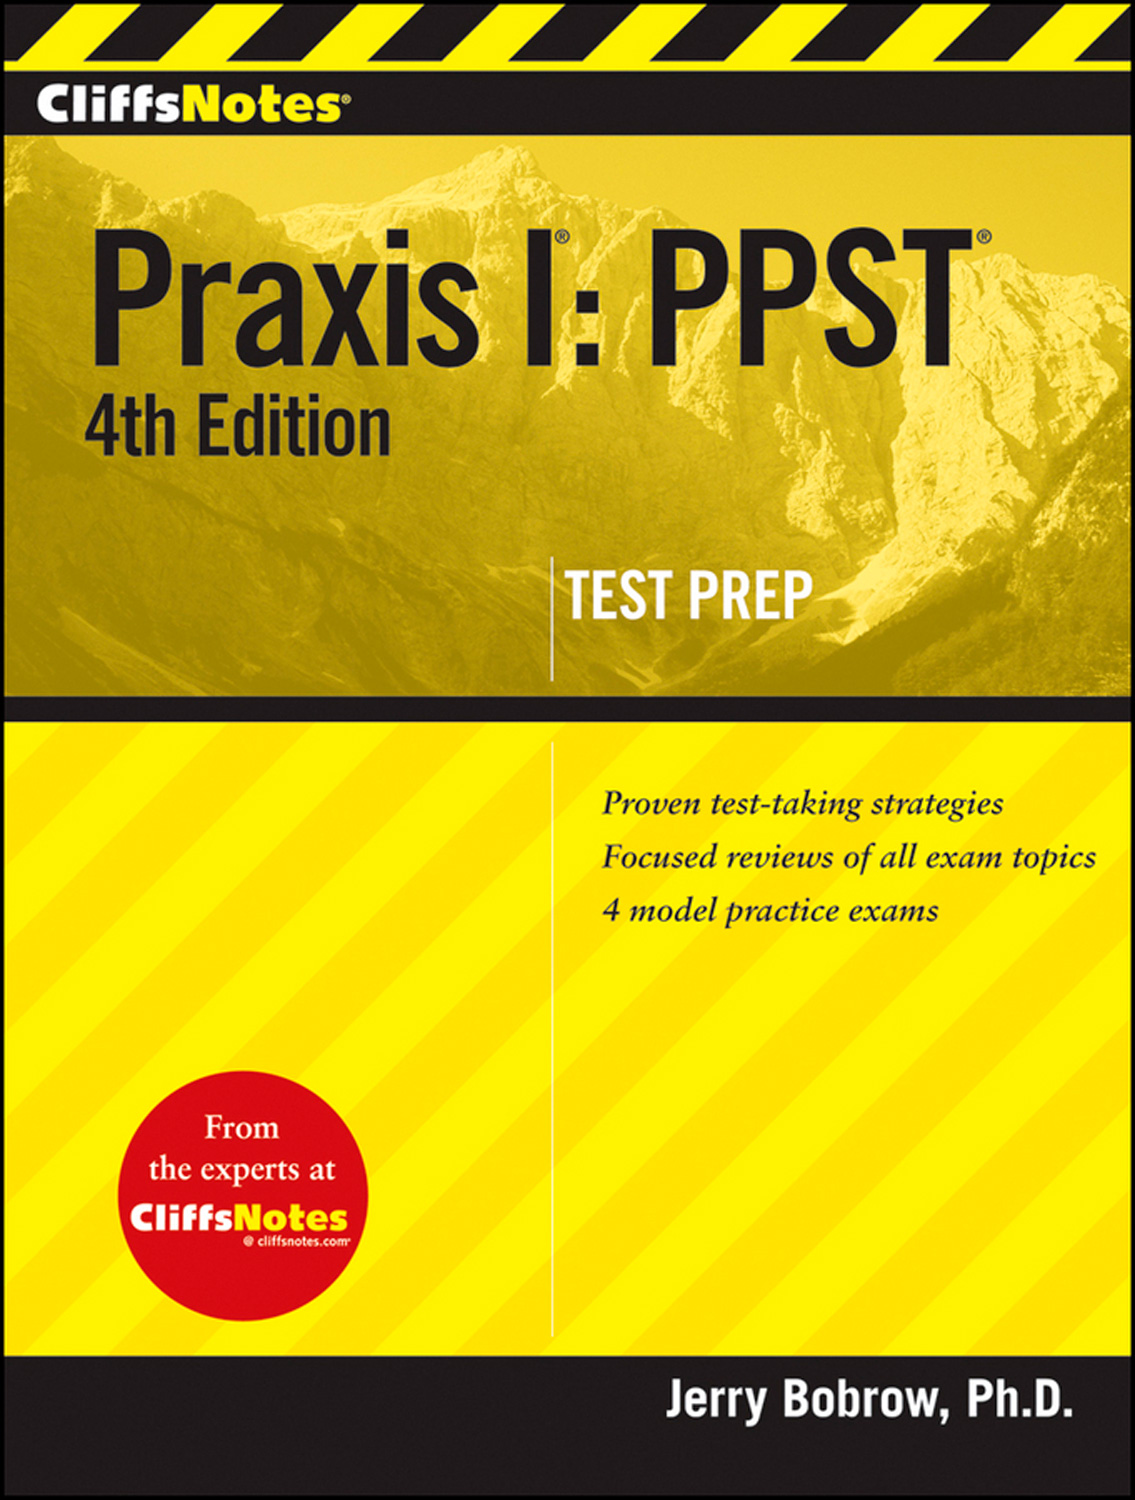 CliffsNotes Praxis I: PPST, 4th Edition-9780470454541